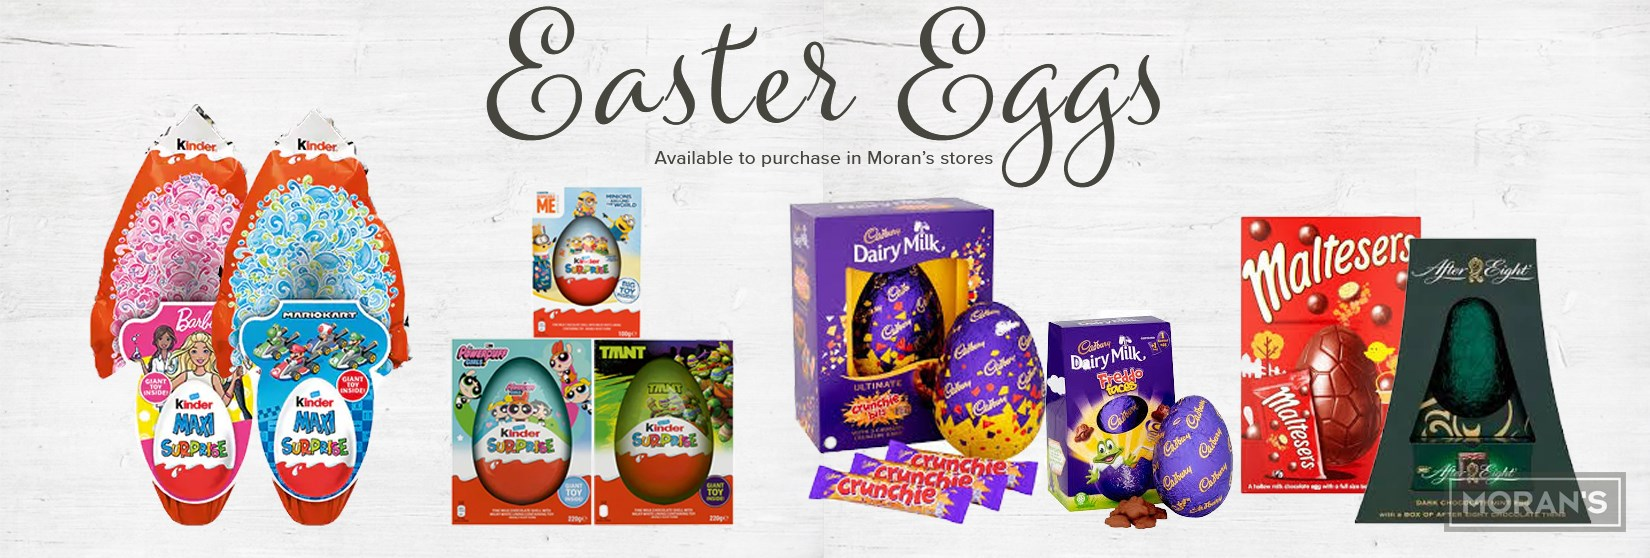 Easter Eggs Childrens & Adults Available in store 3.jpg